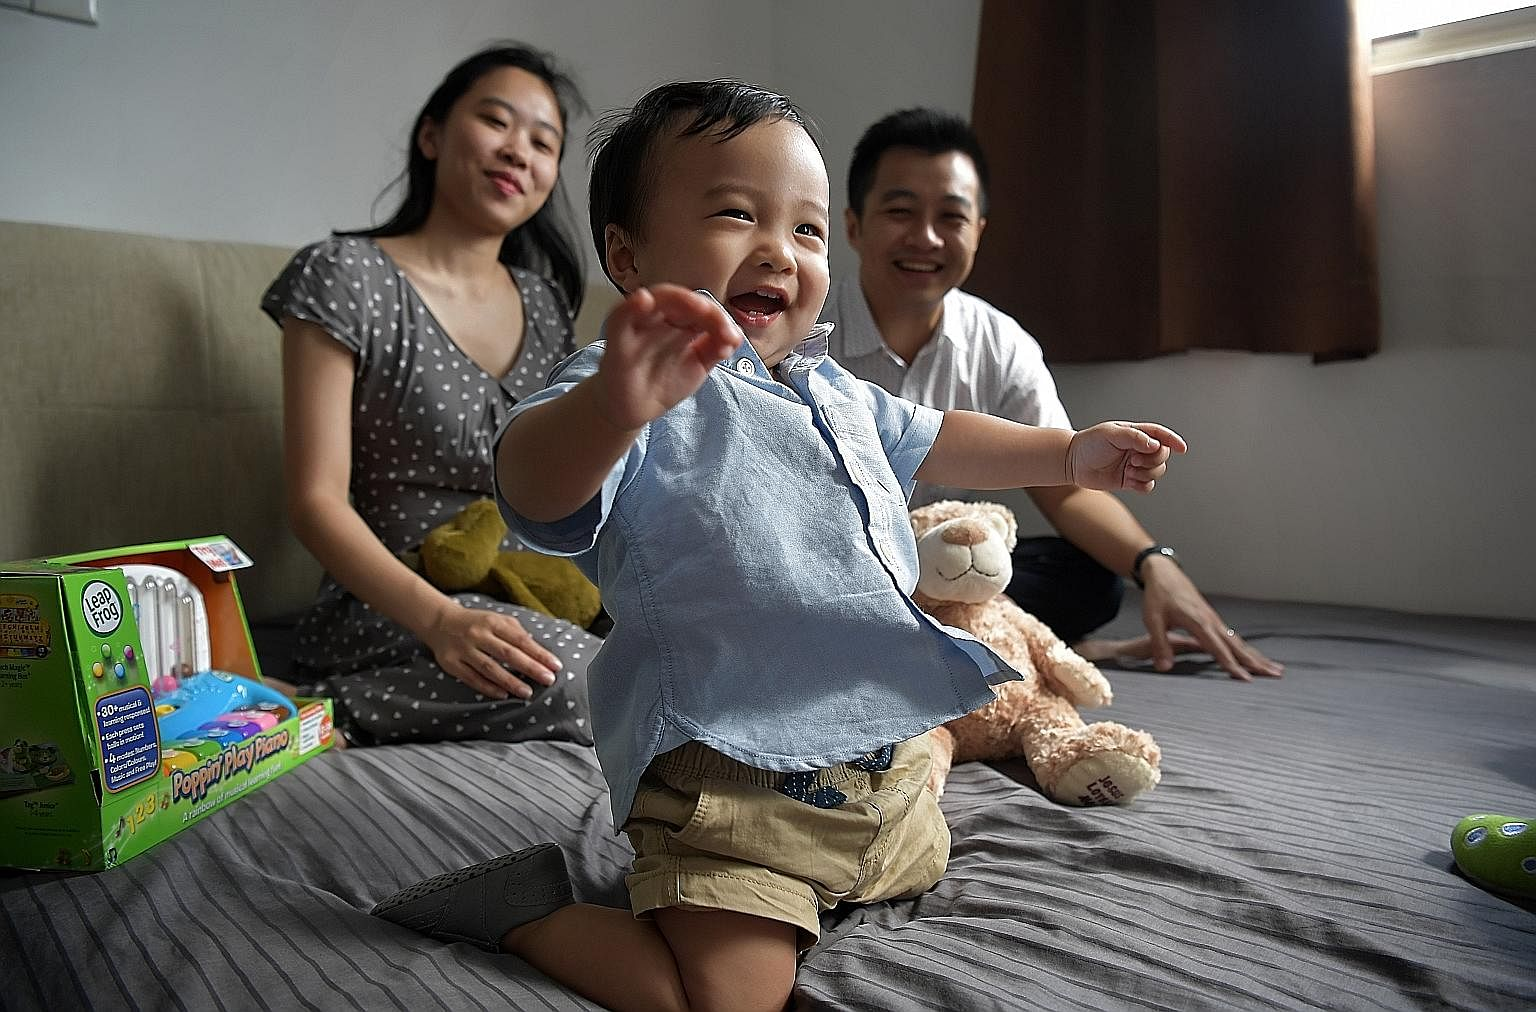 Straits Times correspondent Amelia Teng, 29, with her one-year-old son Christopher and husband, Geoffrey Toi, 33. The cheapest option of the lifelong medication needed for Christopher costs $5,000 a month and the drug has to be procured from Australi